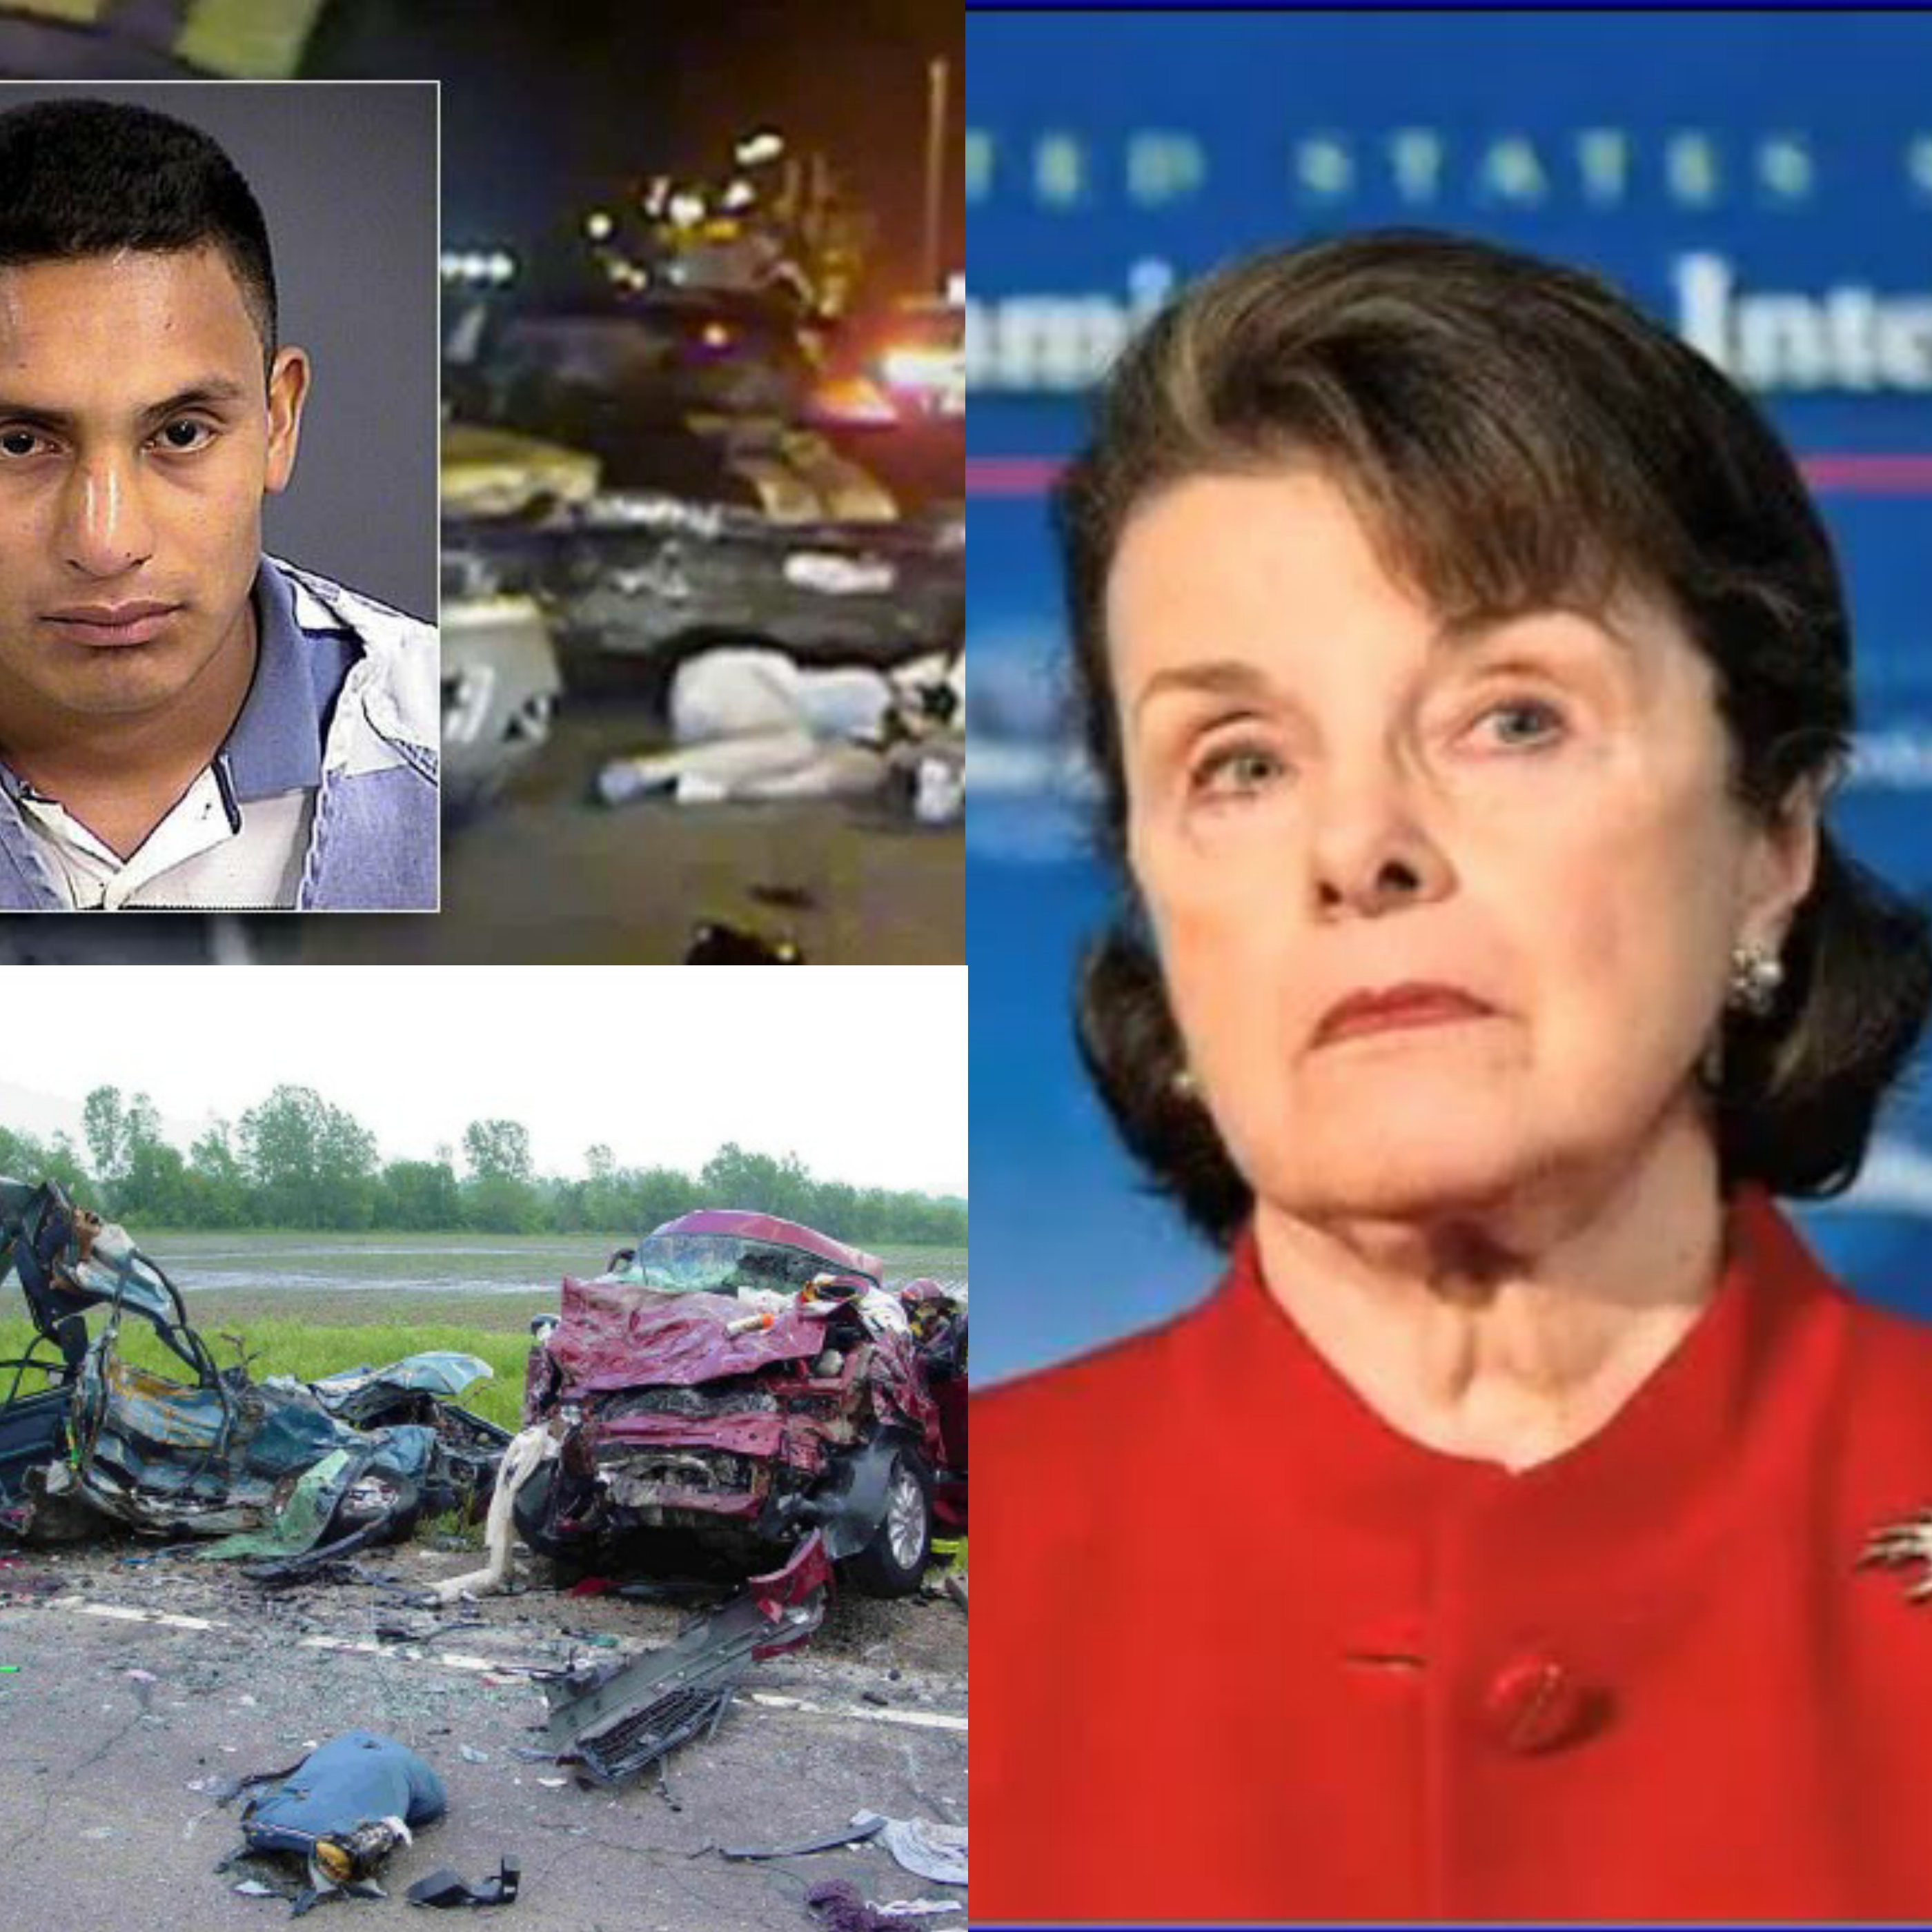 feinstein criminal waivers dui immigration bill